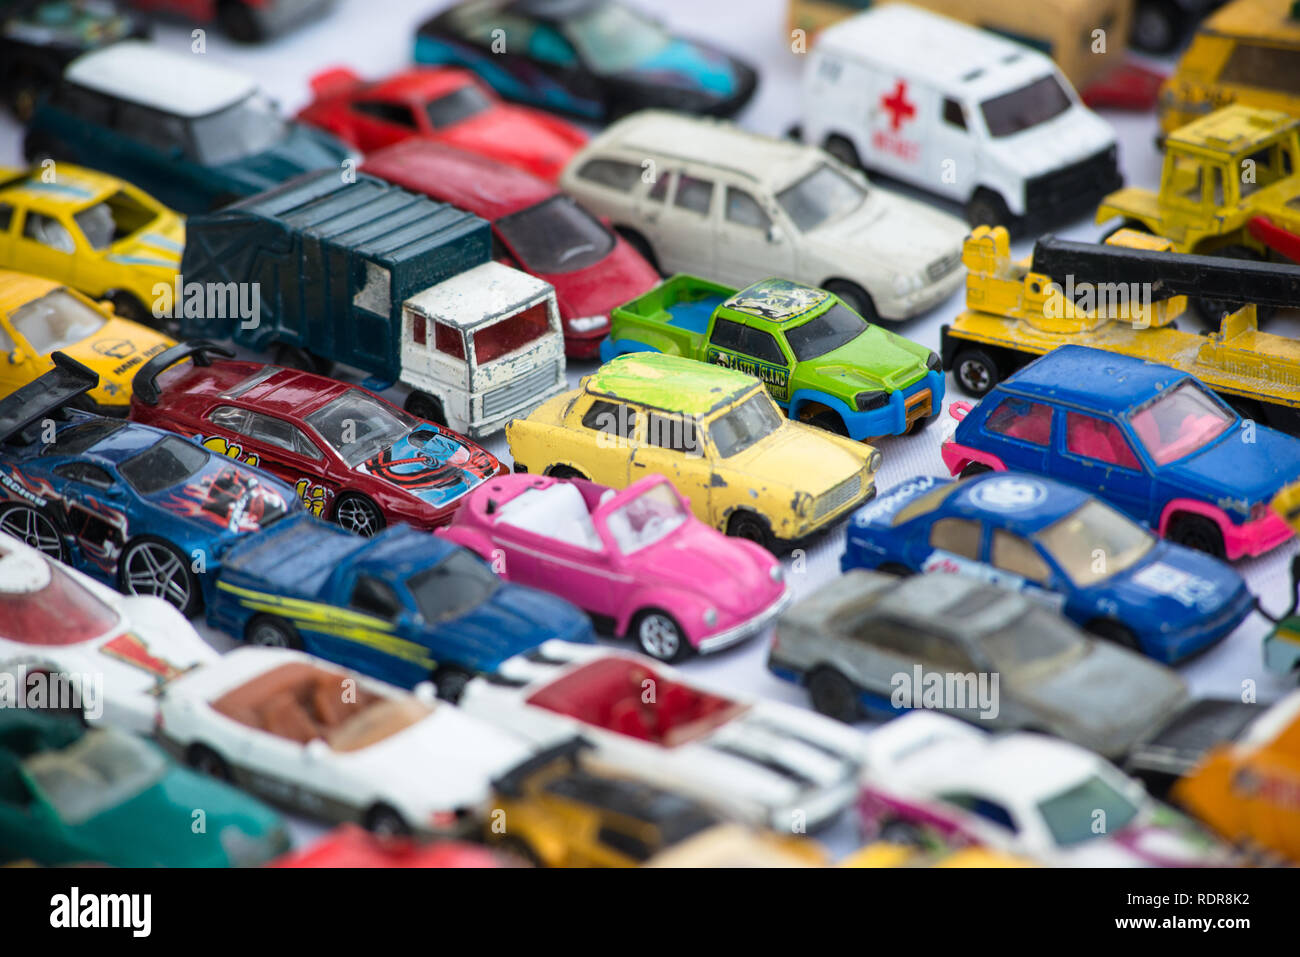 Matchbox Cars High Resolution Stock Photography And Images Alamy